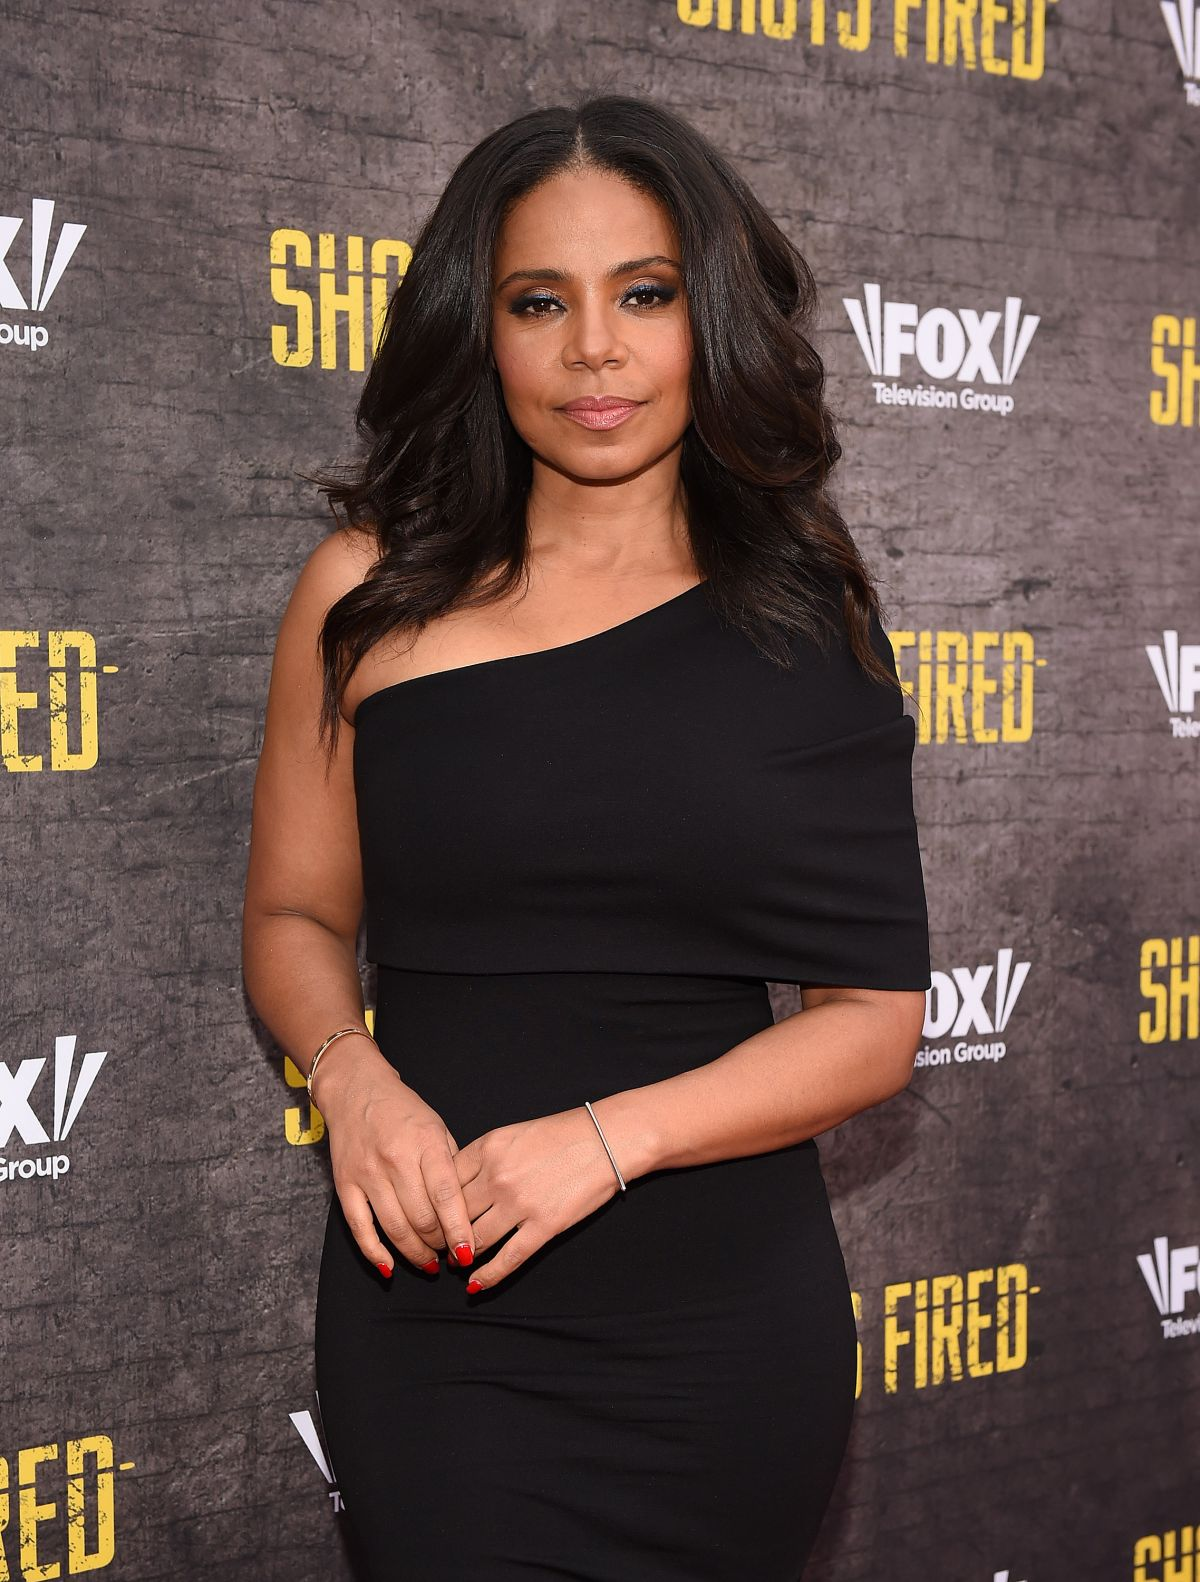 SANAA LATHAN at Shots Fired Screening in Los Angeles 05/10/2017